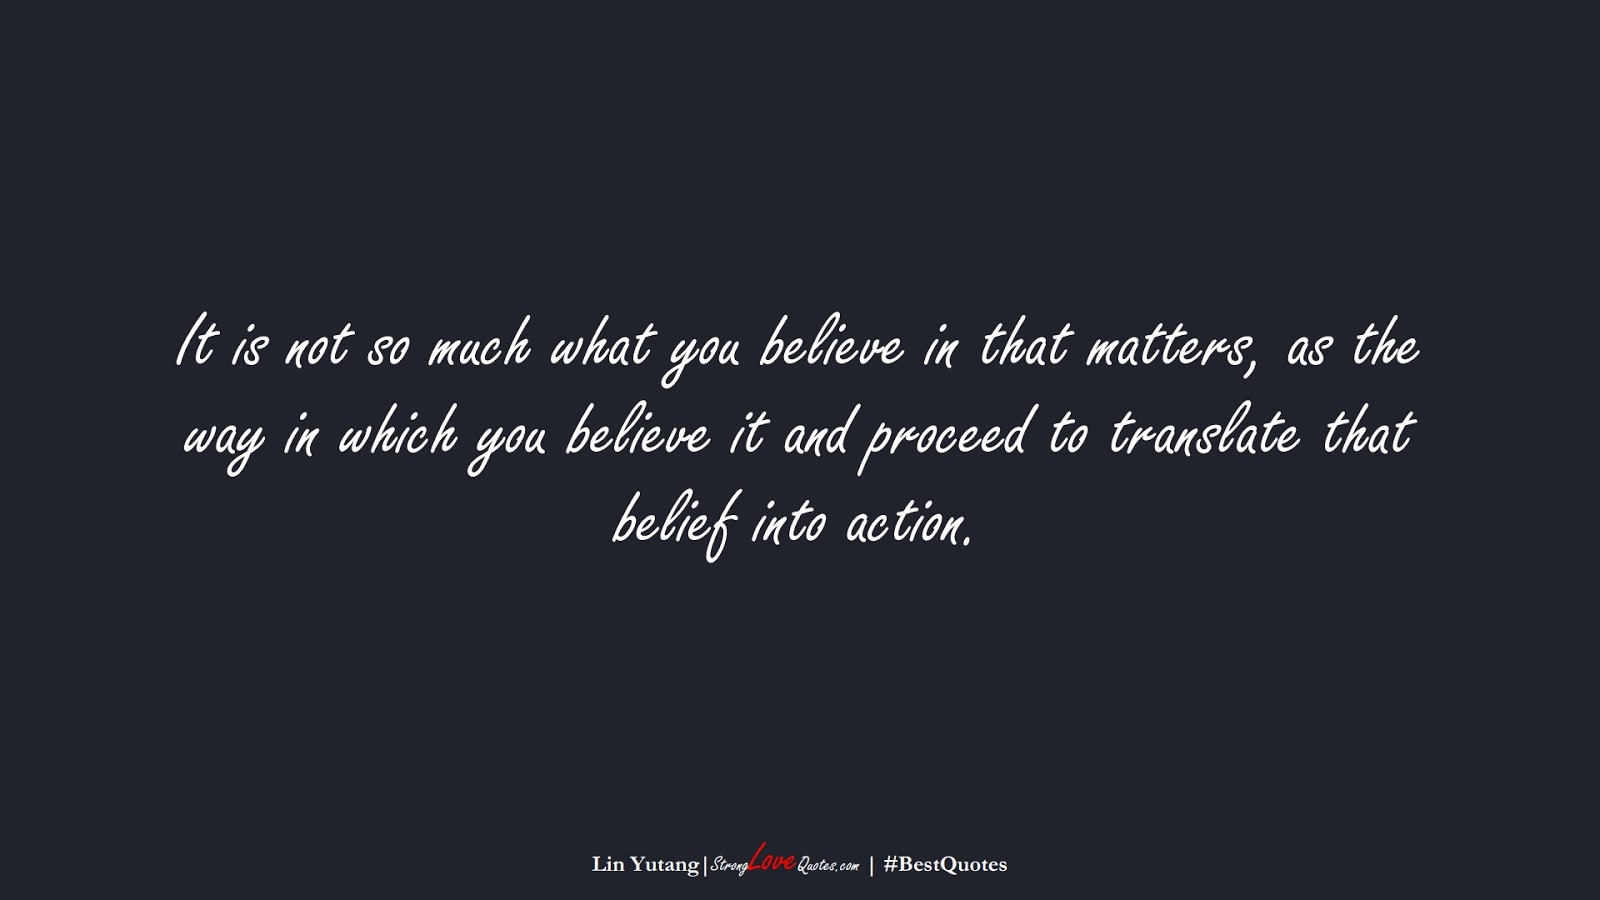 It is not so much what you believe in that matters, as the way in which you believe it and proceed to translate that belief into action. (Lin Yutang);  #BestQuotes